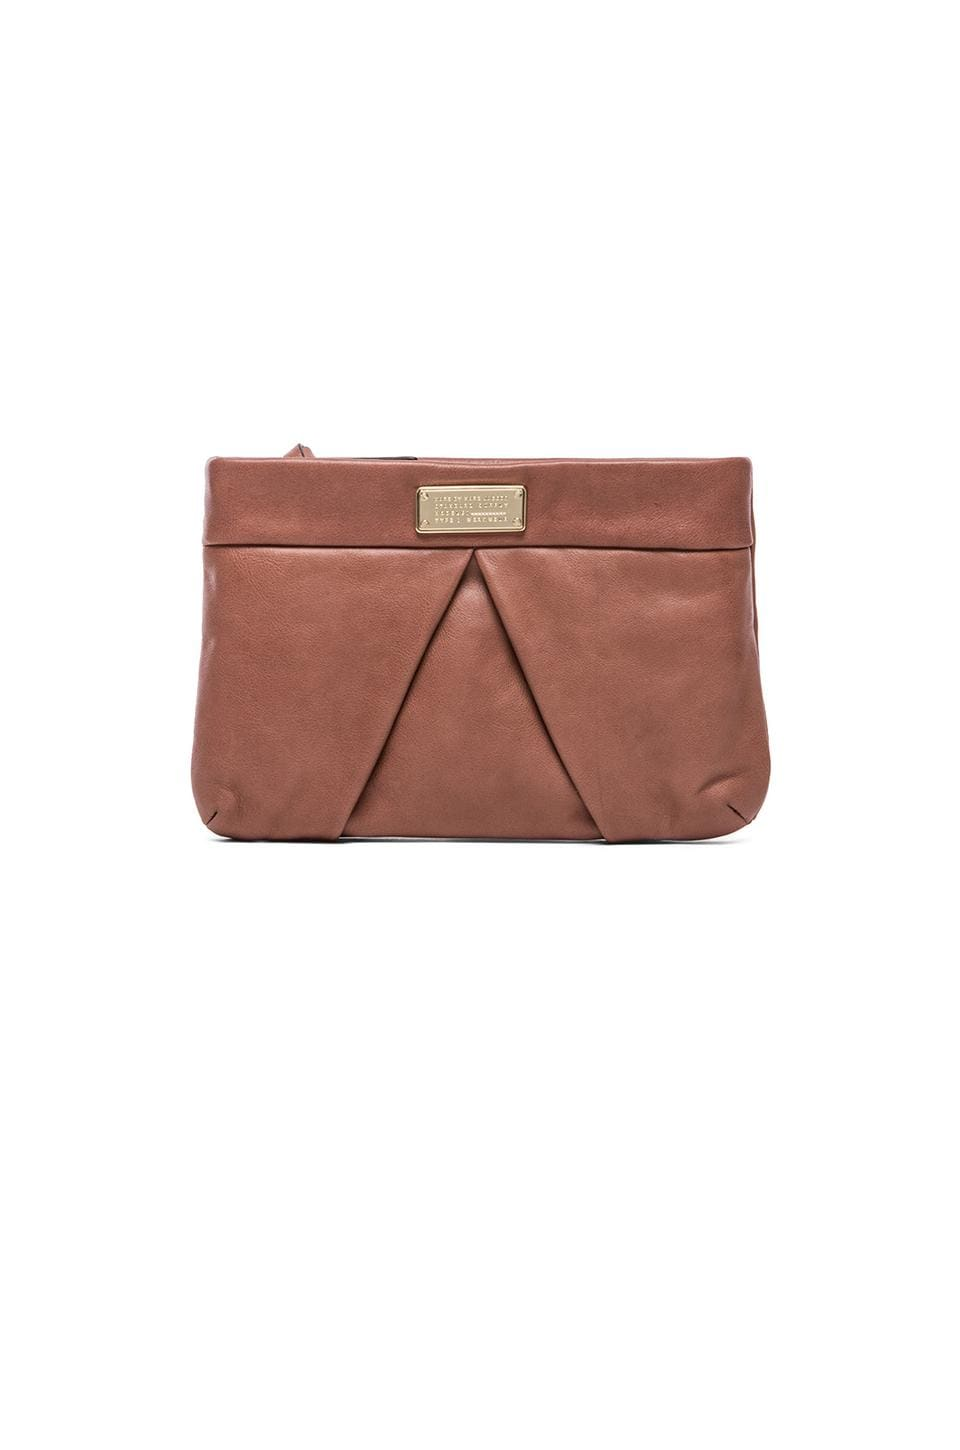 Marc by Marc Jacobs Marchive Zip Pouch in Woodland